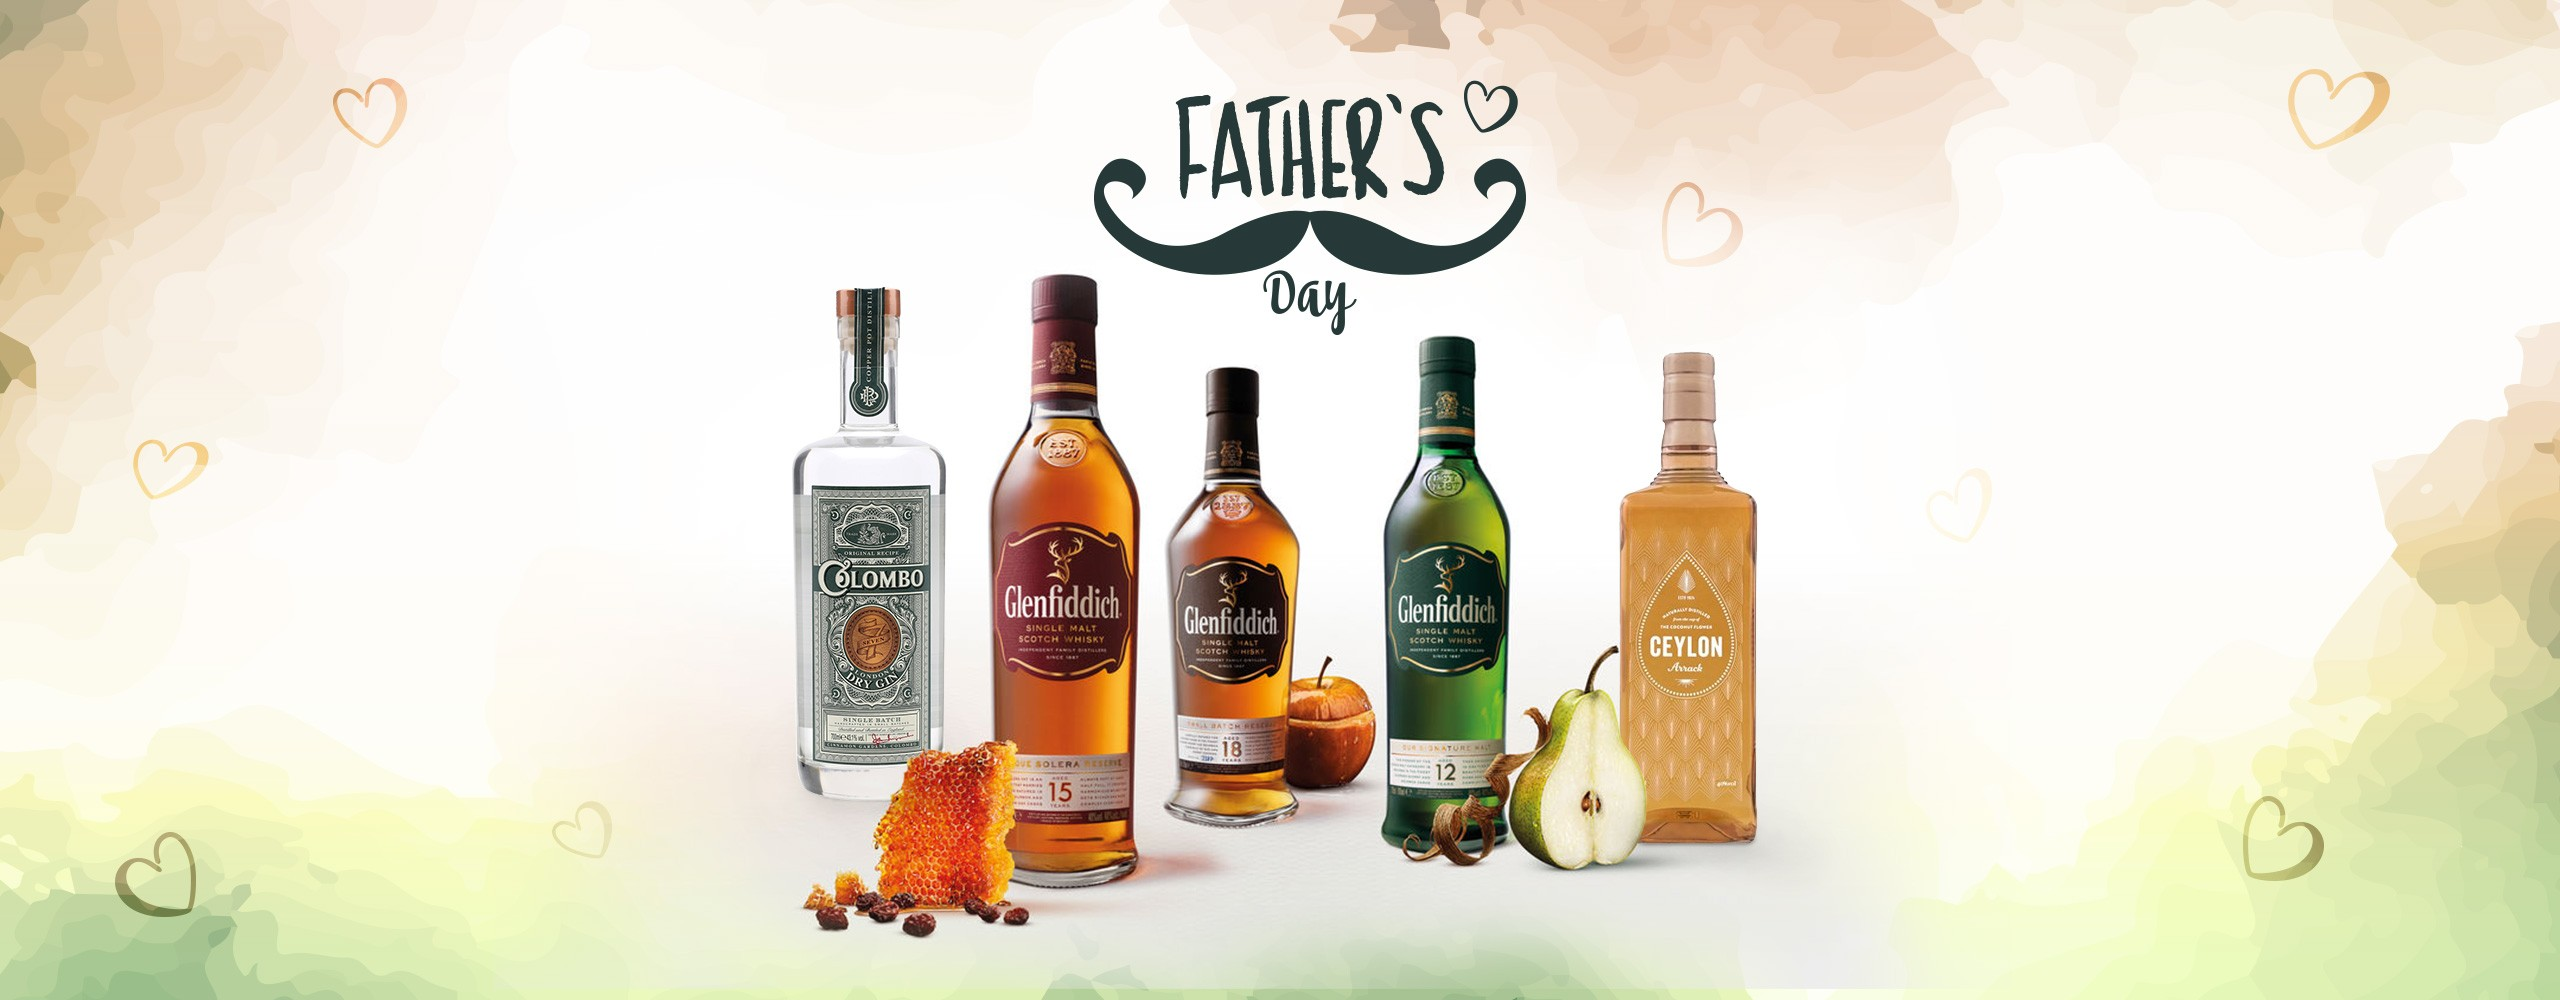 Father's Day Gift Offers - What Have You Got Your Dad?